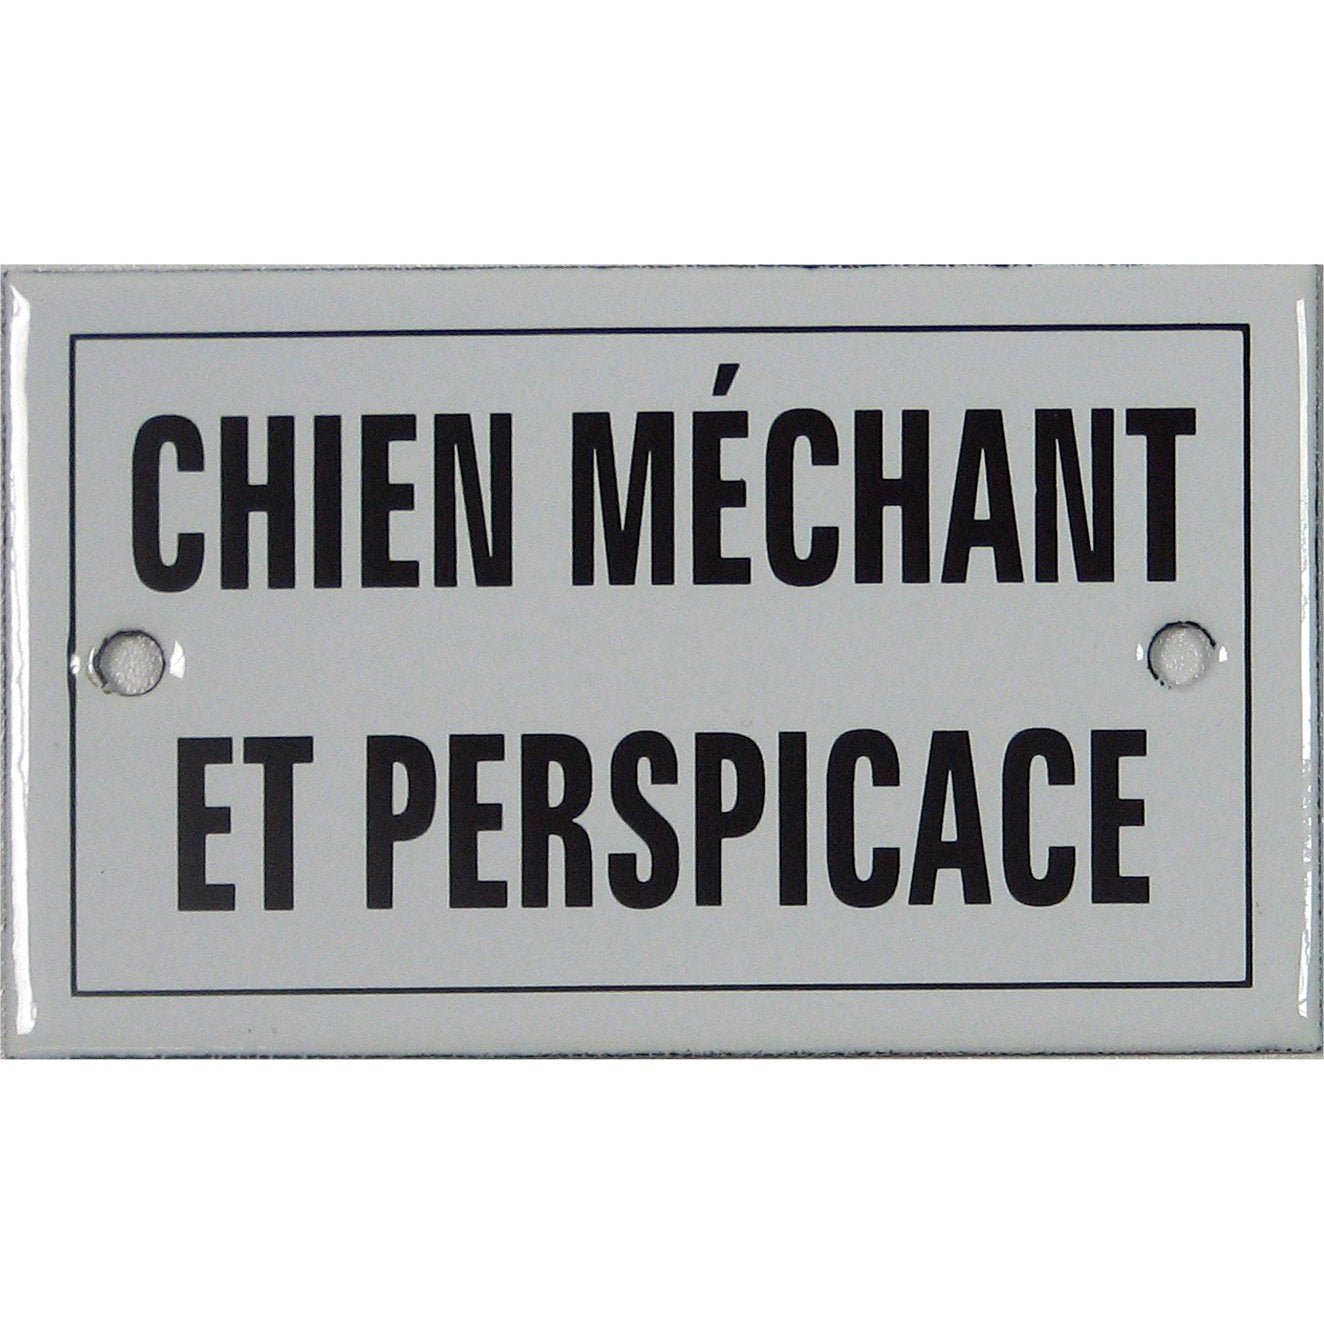 plaque maill e chien m chant et perspicace visser en acier leroy merlin. Black Bedroom Furniture Sets. Home Design Ideas